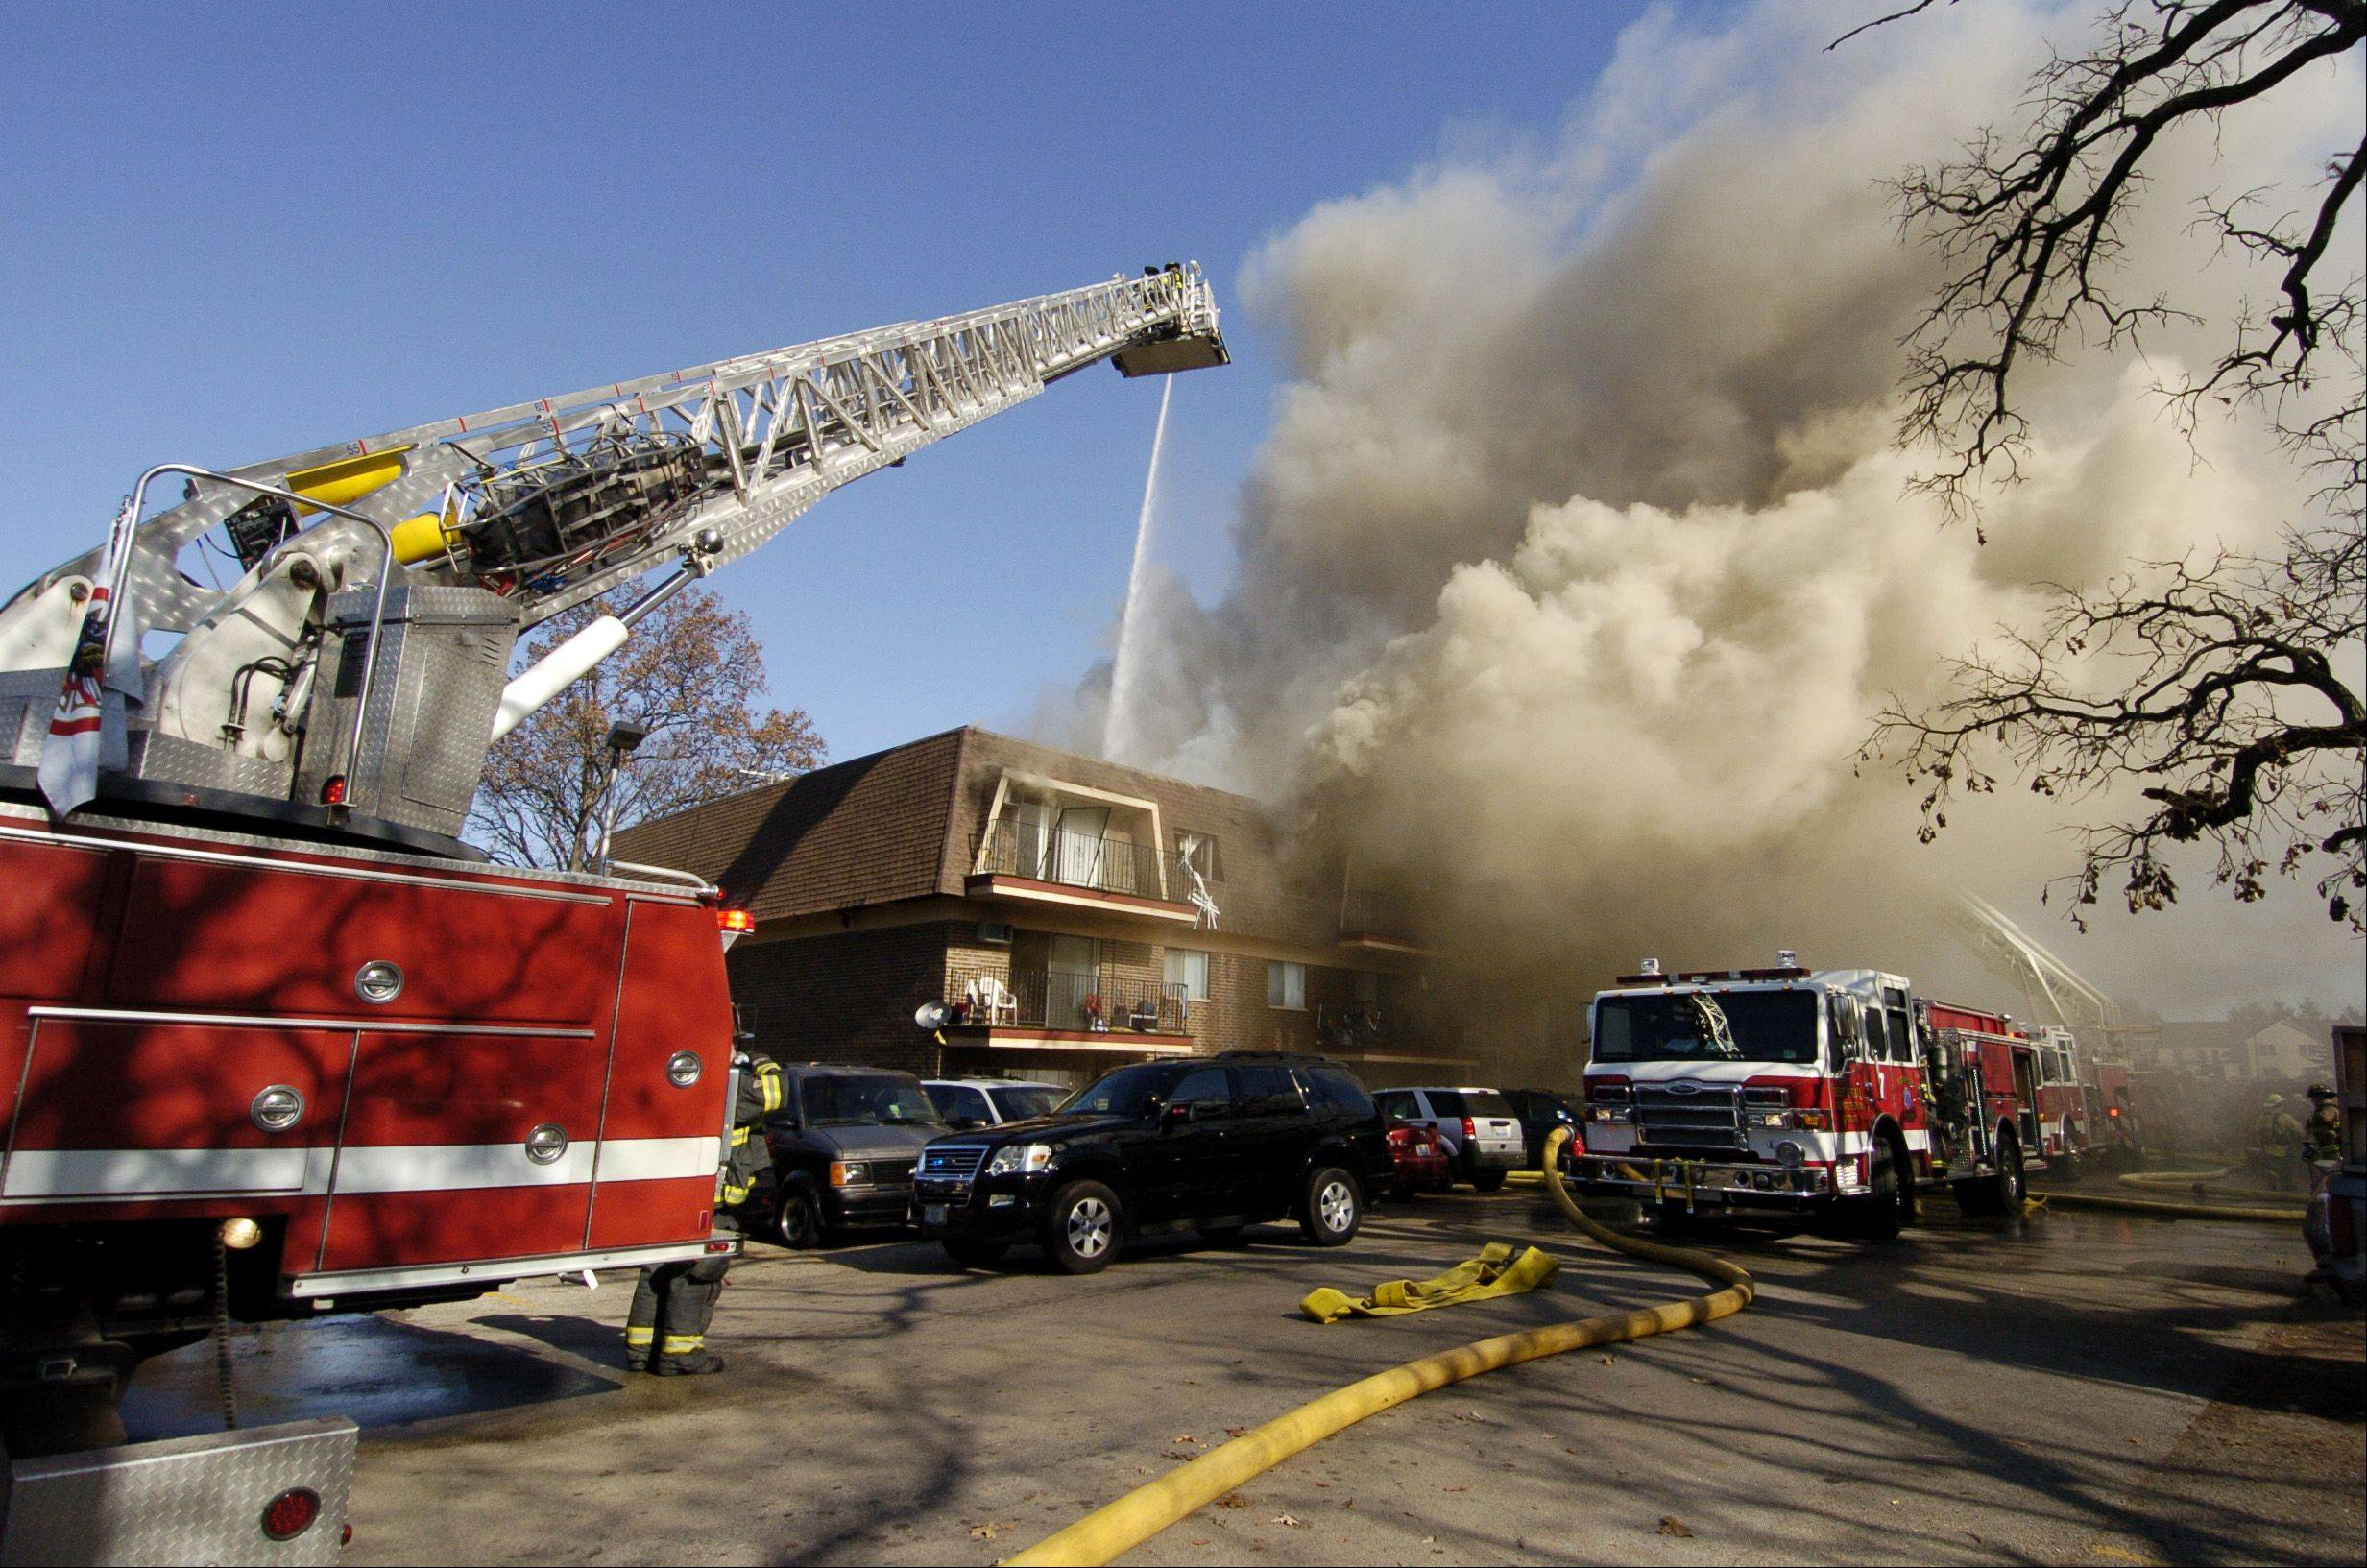 Multiple fire departments worked to extinguish a fire at an apartment building Sunday in the 1200 block of Kings Circle in West Chicago. The fire left many residents temporarily homeless, but all escaped unharmed.